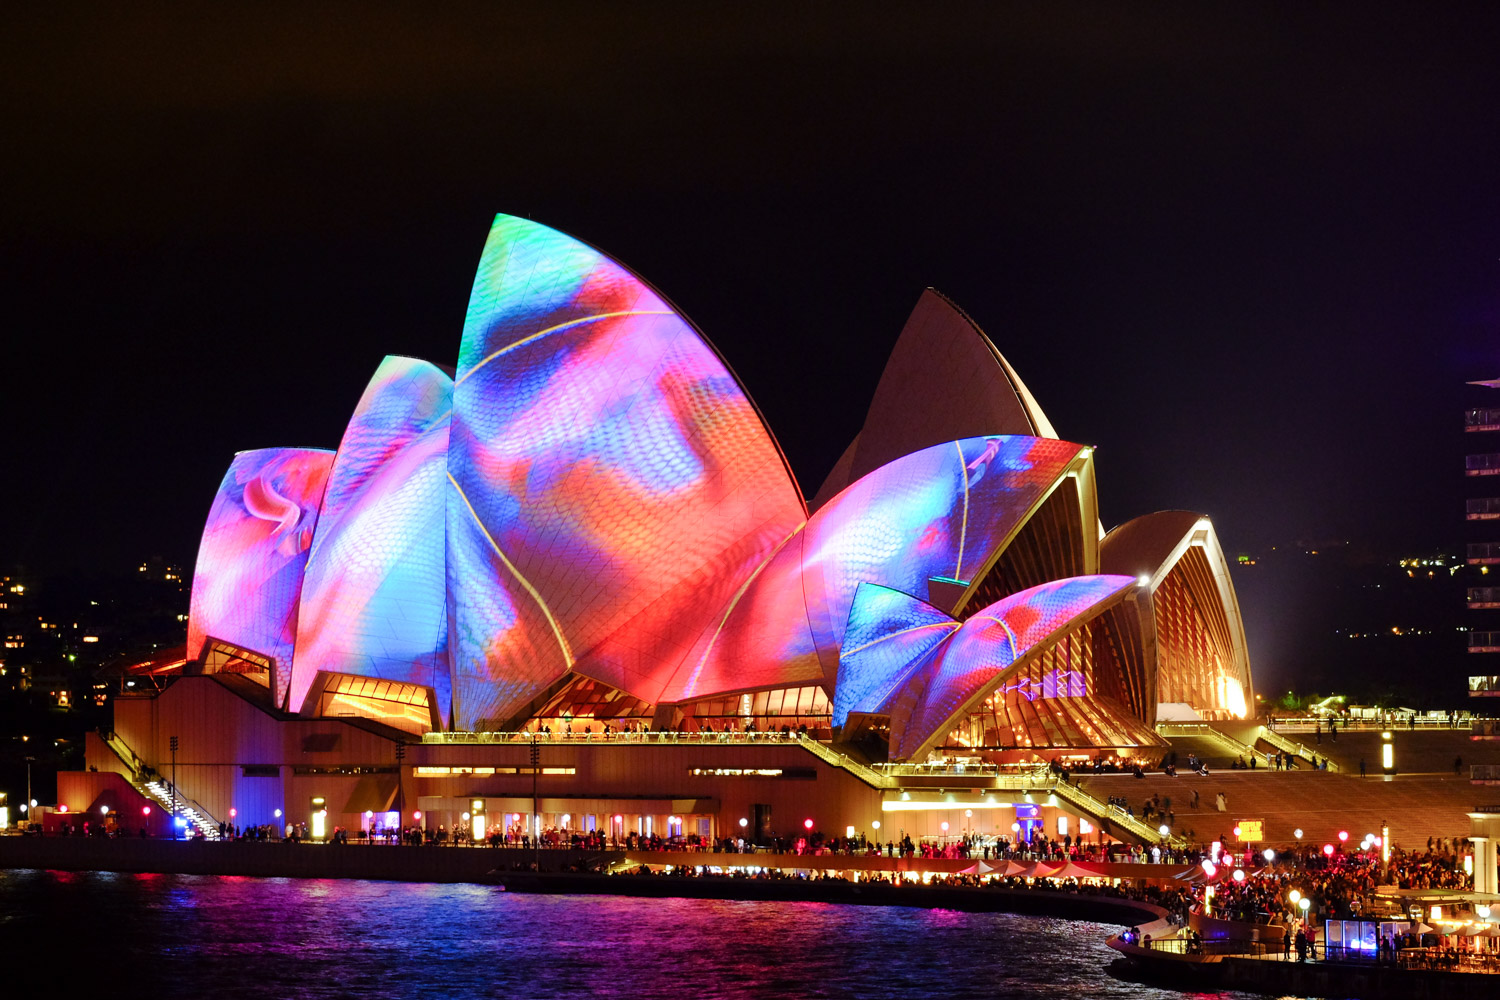 Image: OIS is a godsend, sometimes even when shooting on a tripod. Sydney Opera House during Vivid F...